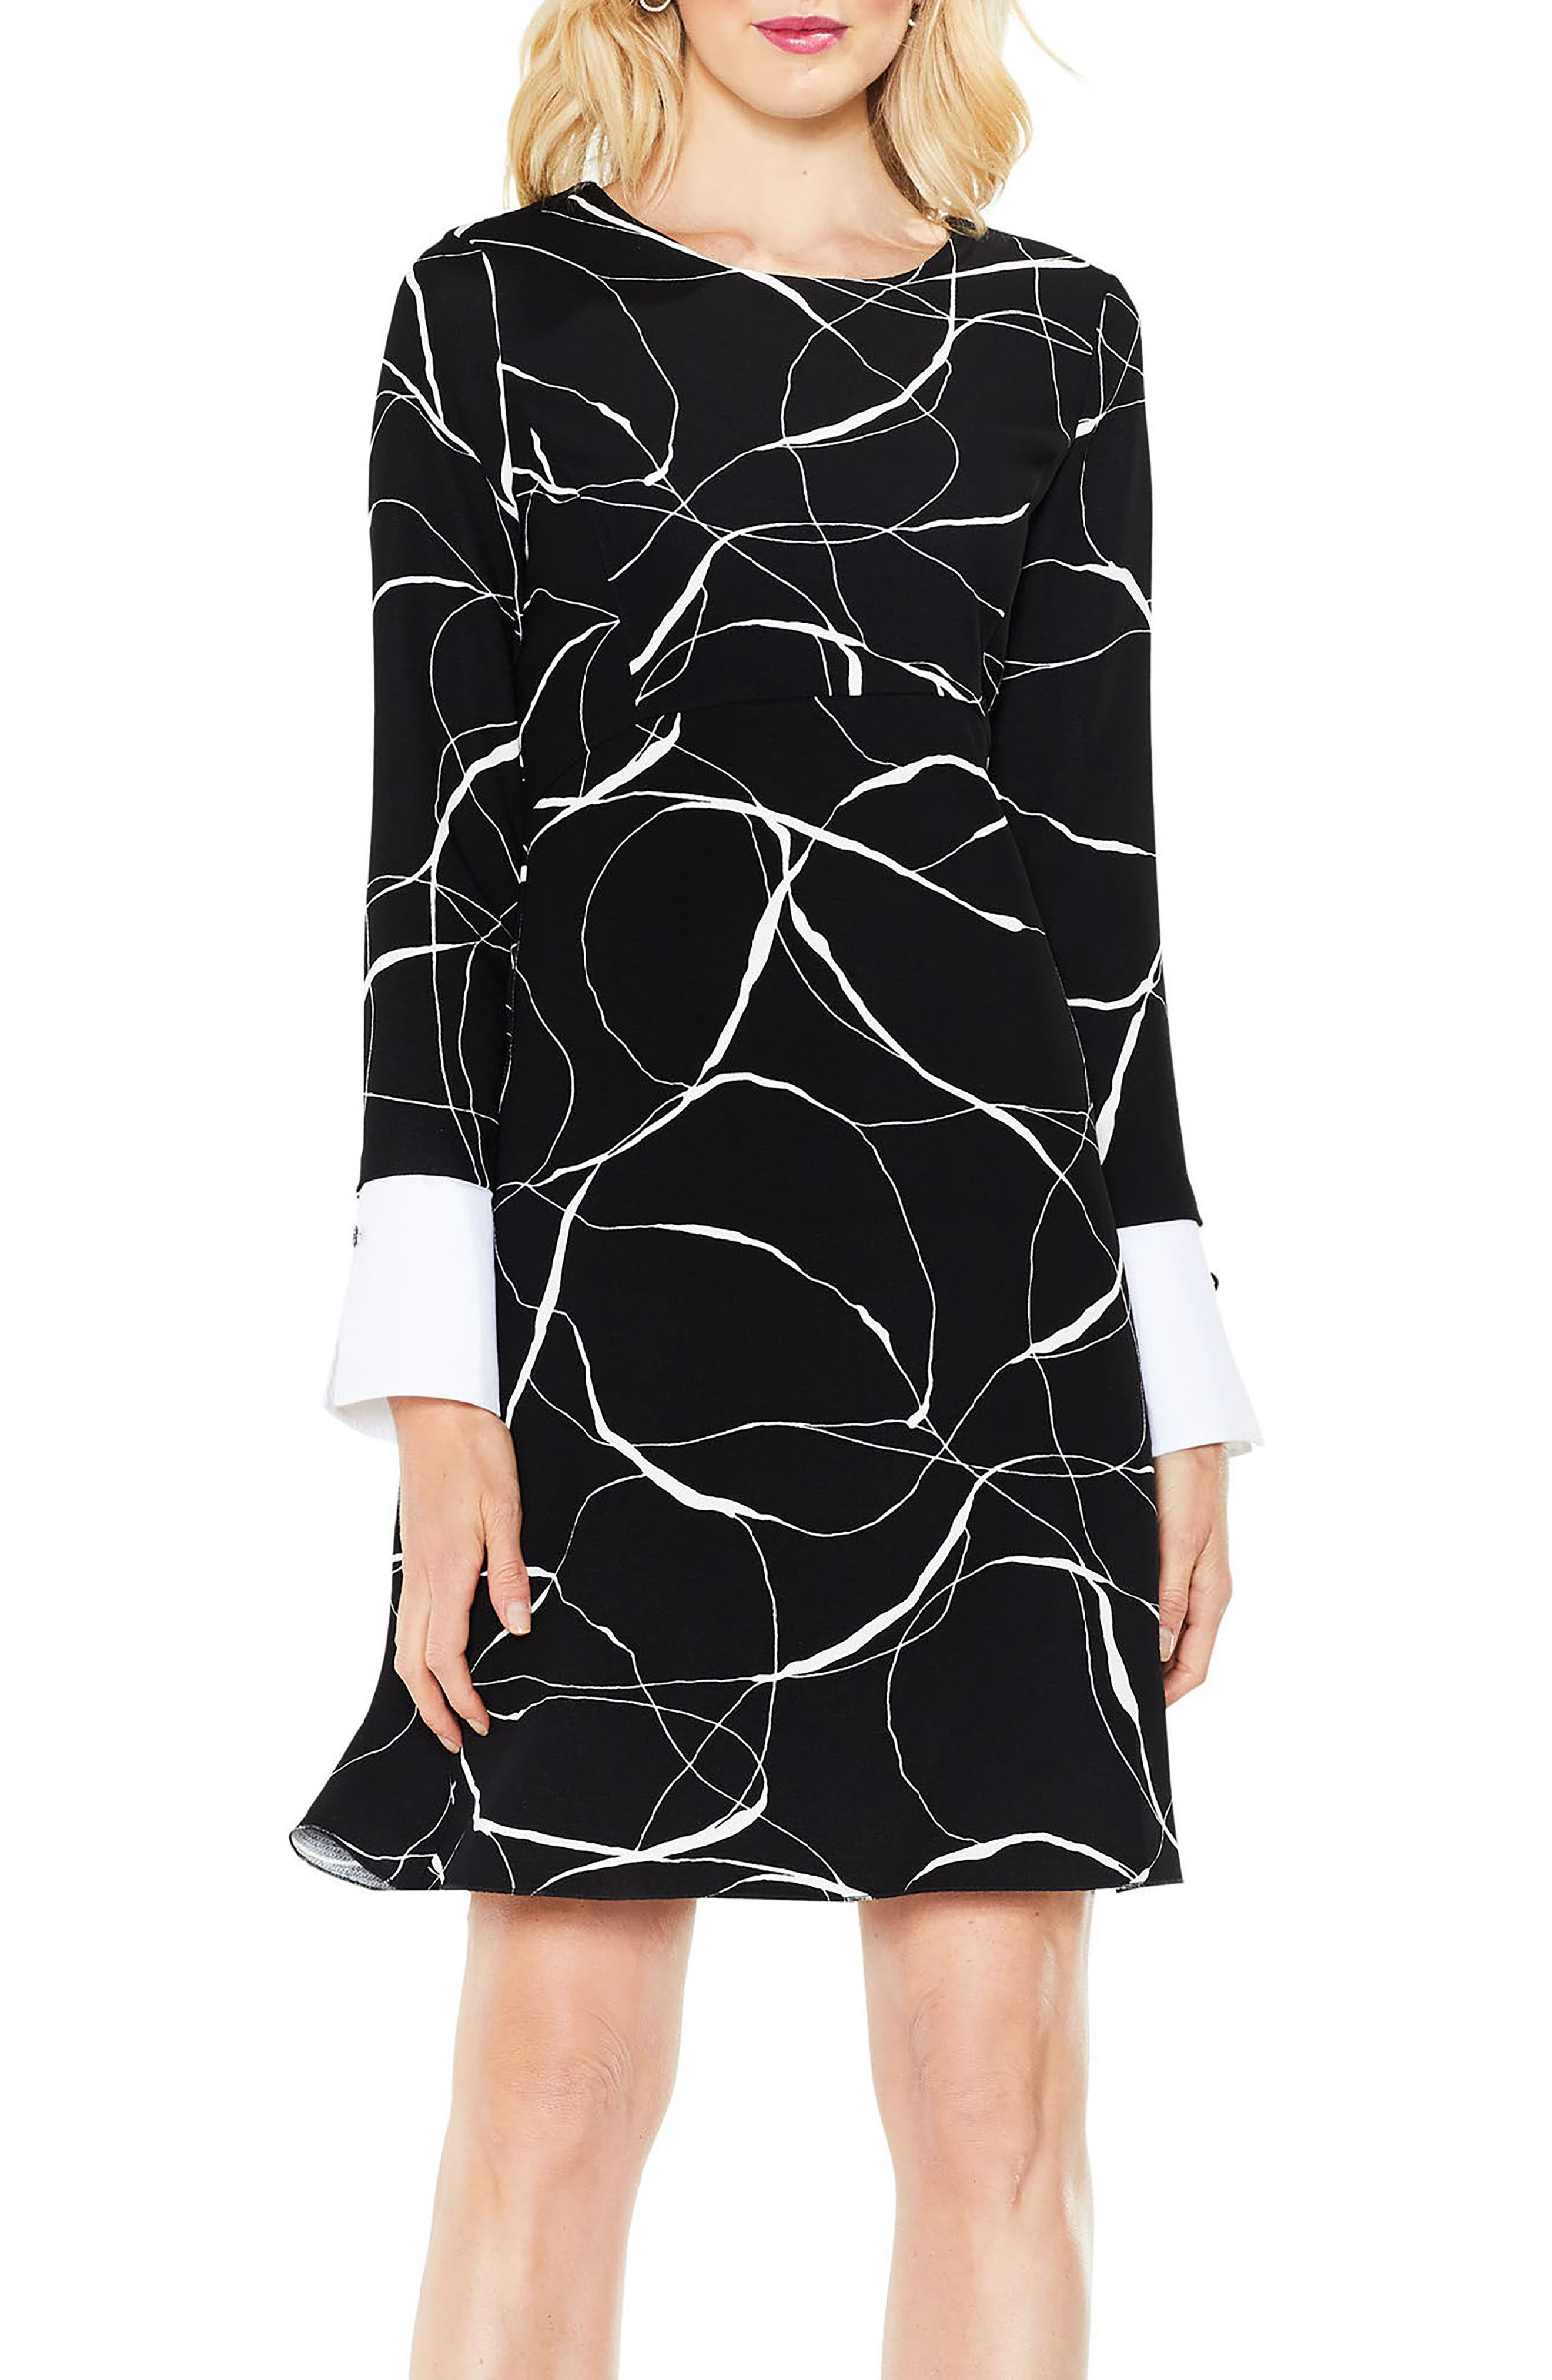 Main Image - Vince Camuto Ink Swirl Mix Media Fit & Flare Dress